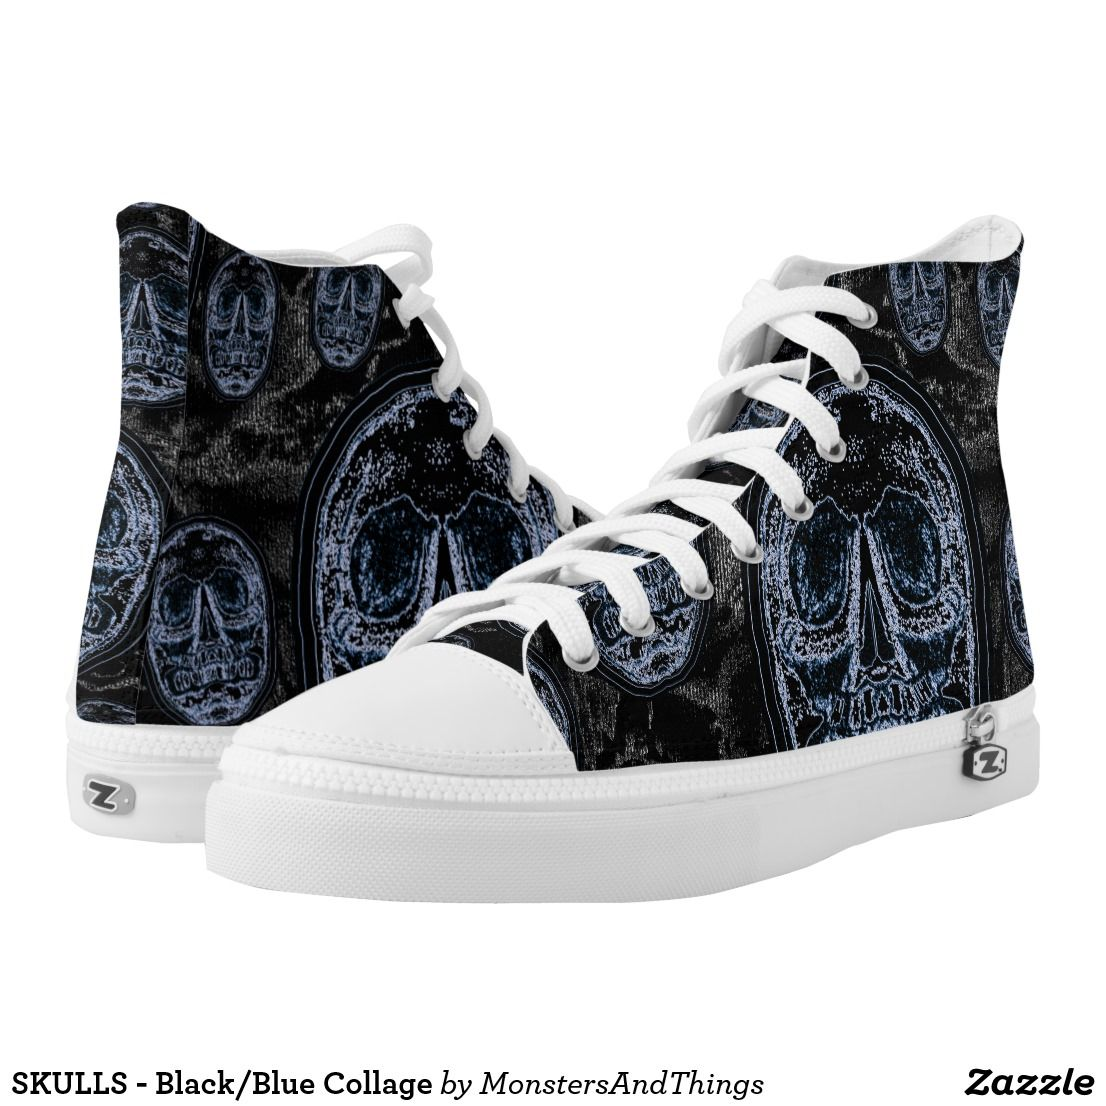 SKULLS - Black/Blue Collage High-Top Sneakers. zazzle.com